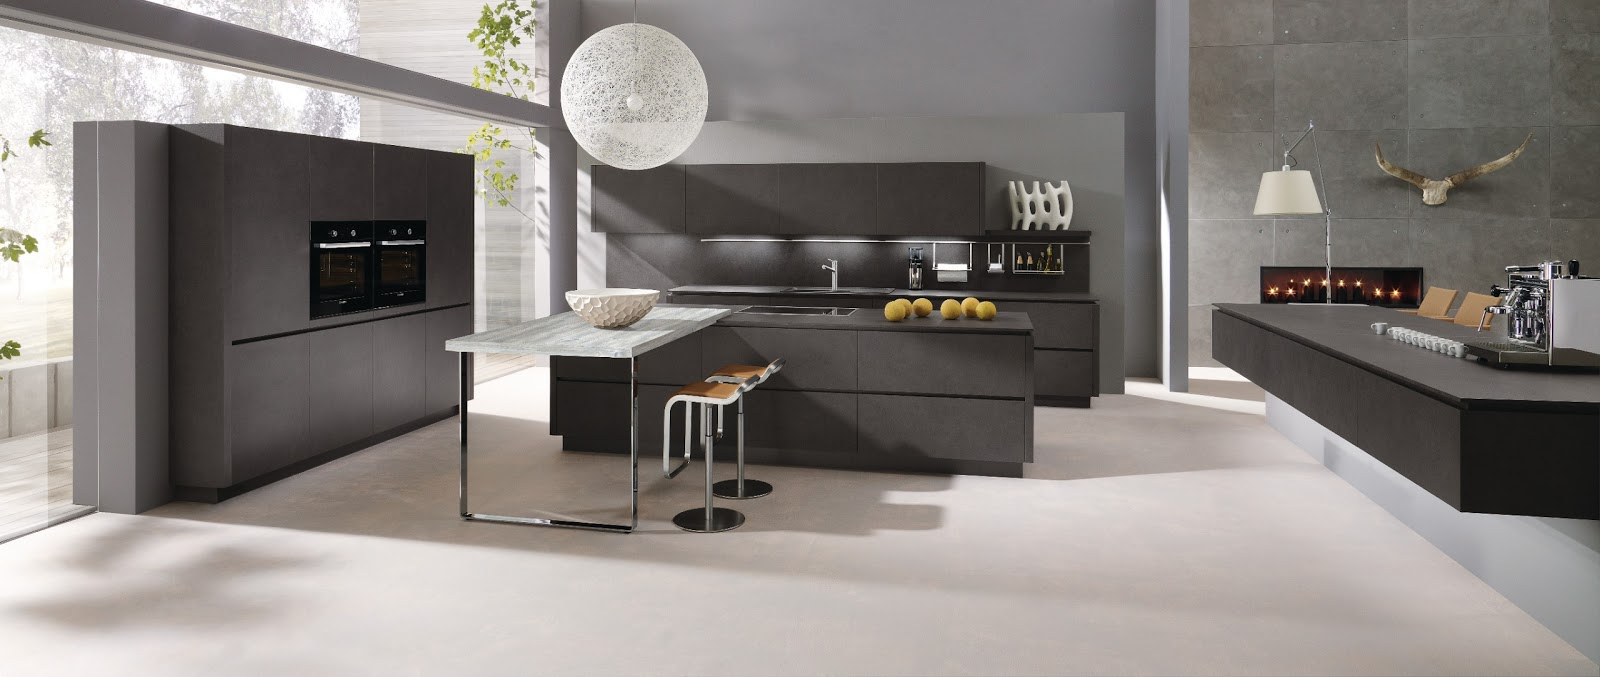 cuisine design anthracite avec lot. Black Bedroom Furniture Sets. Home Design Ideas